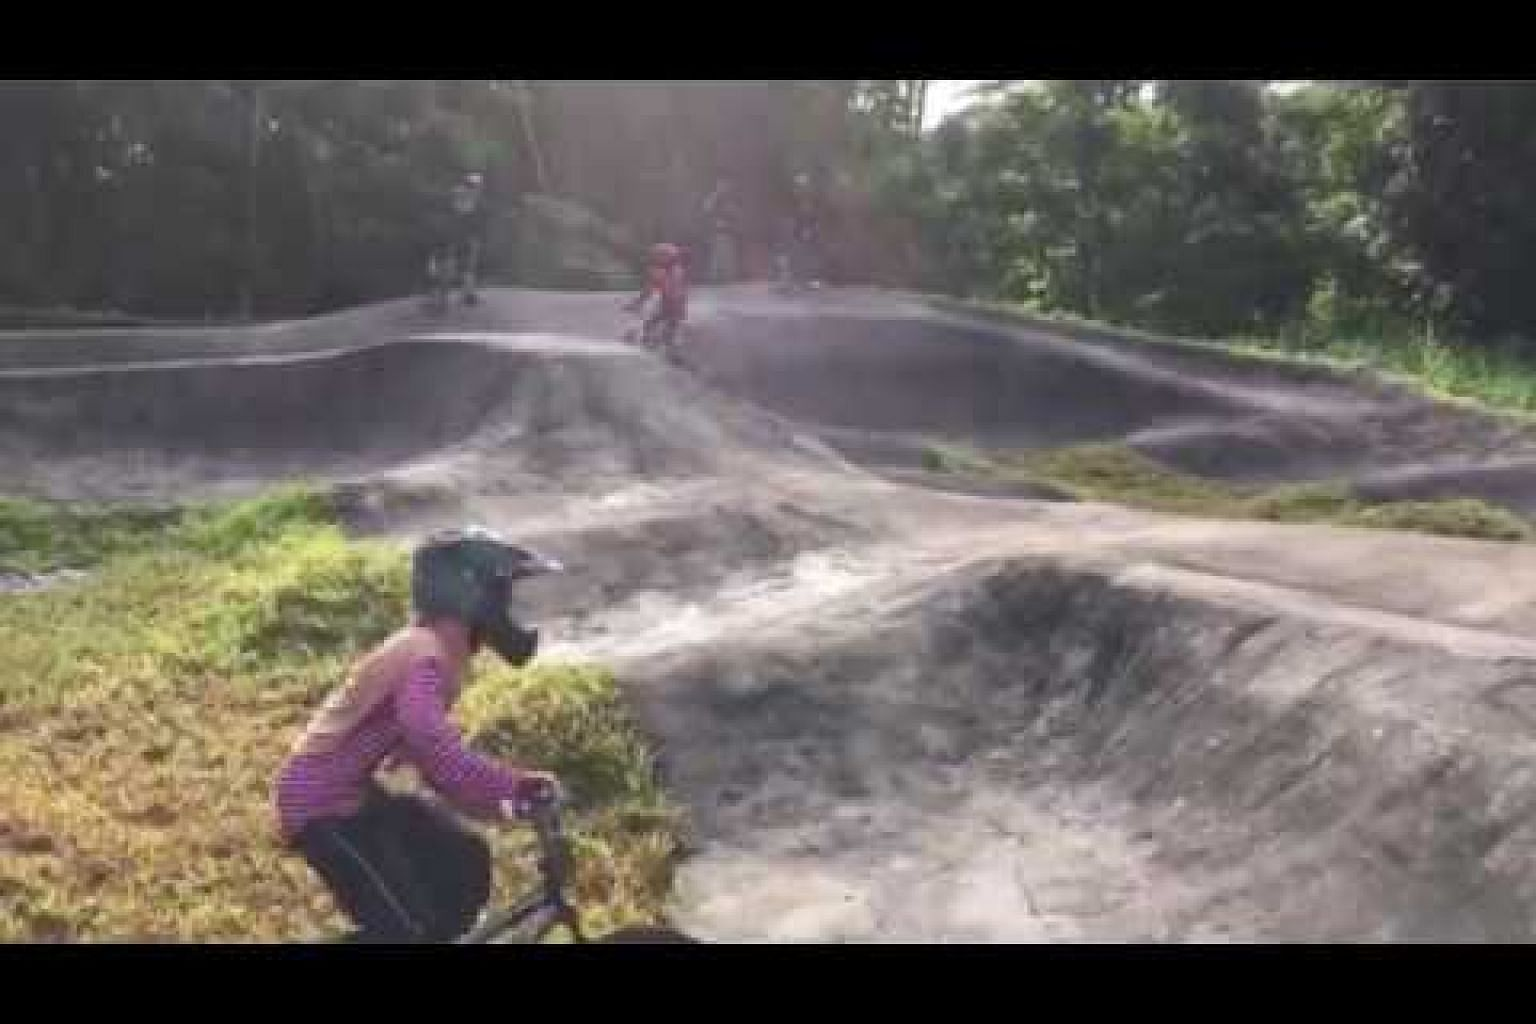 Bikers trying out the pump track, Singapore's first, at Chestnut Nature Park